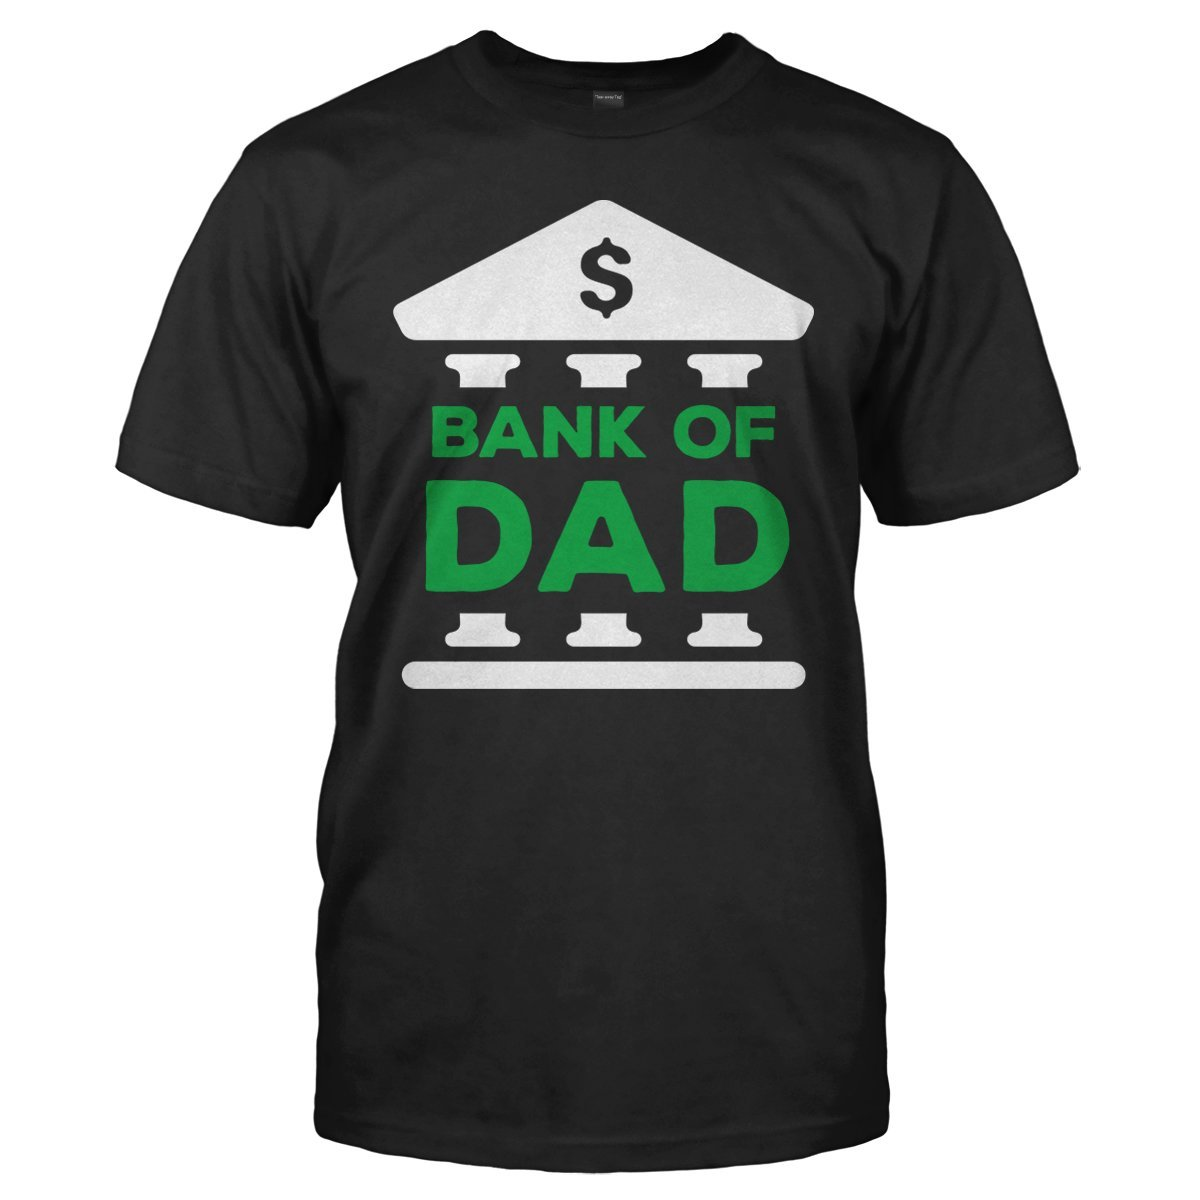 Bank of Dad - T Shirt